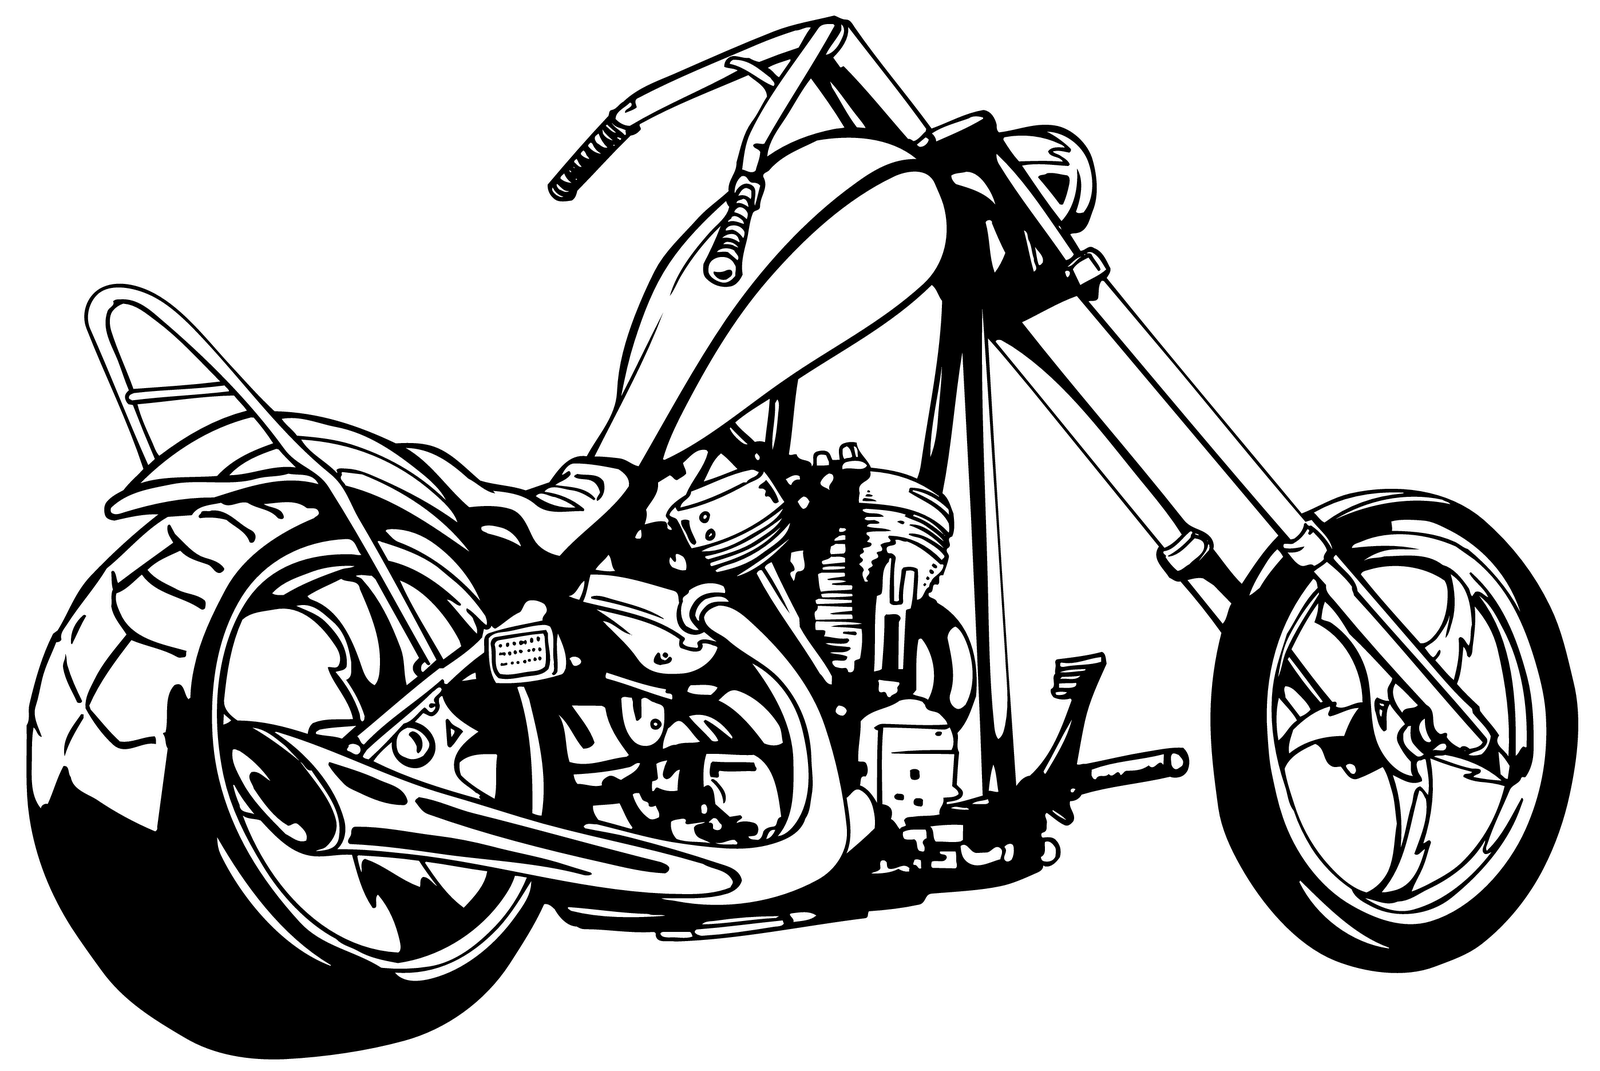 Harley clipart banner royalty free download Harley Motorcycle Black And White Clipart - Clipart Kid banner royalty free download